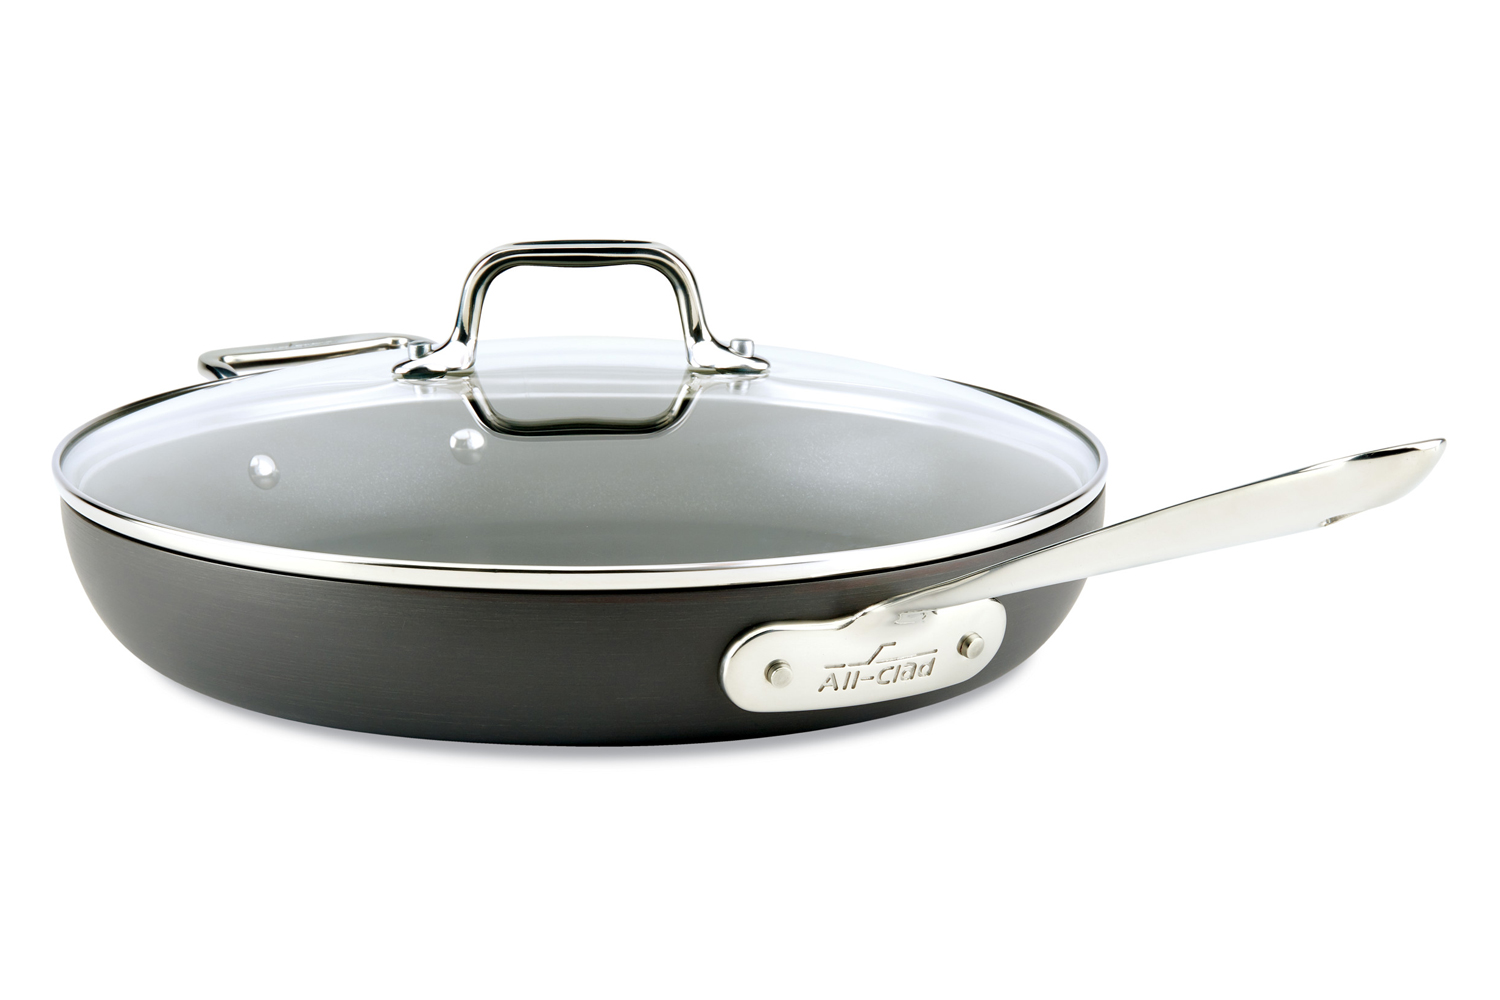 All-Clad HA1 Hard Anodized Nonstick 12 inch Fry Pan w/Lid